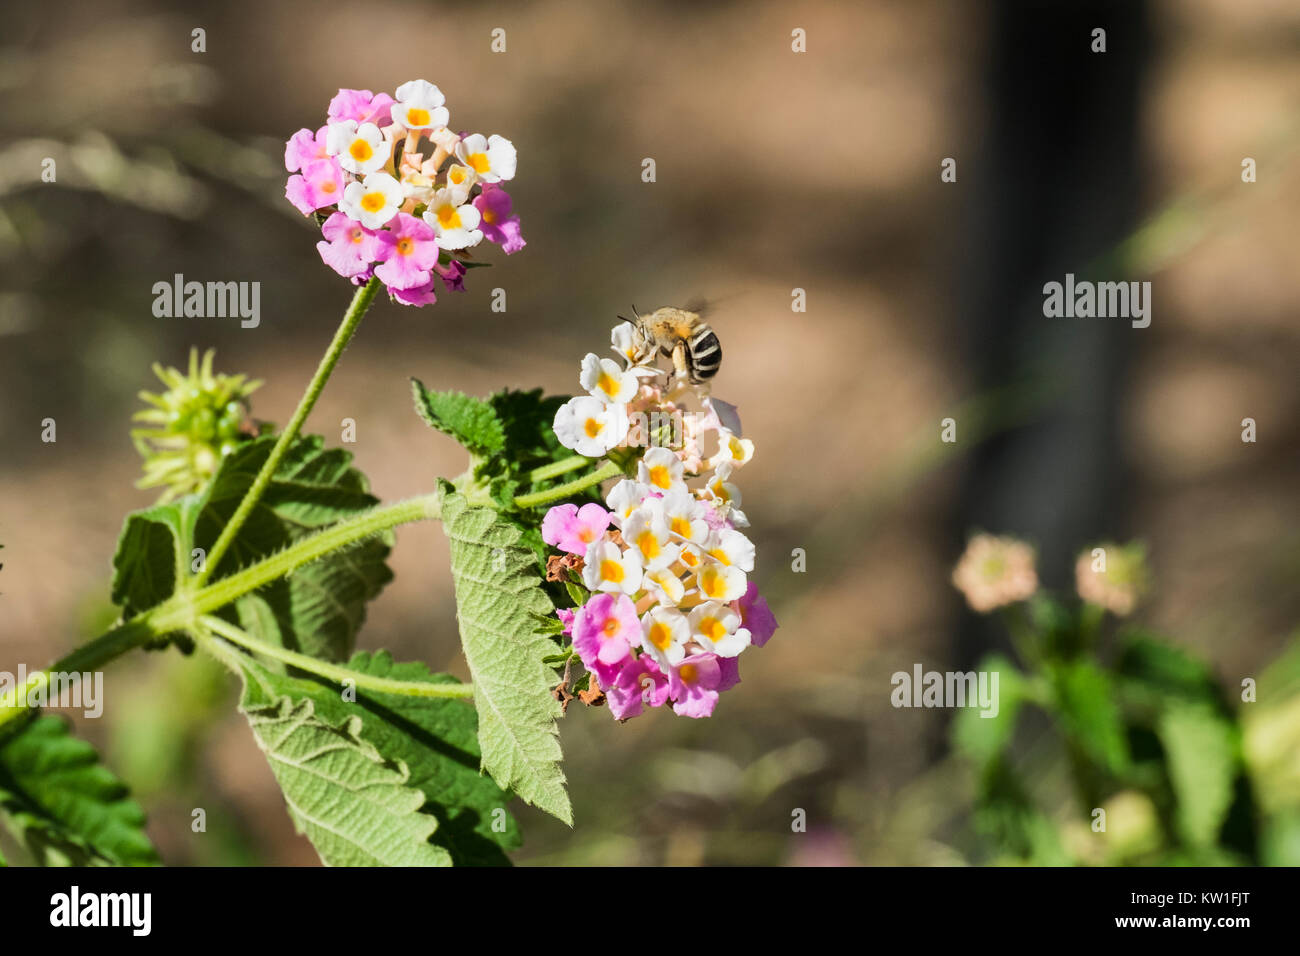 Flower tickberry and a lonely bee arrived for a portion of pollen (Lantana camara) - Stock Image